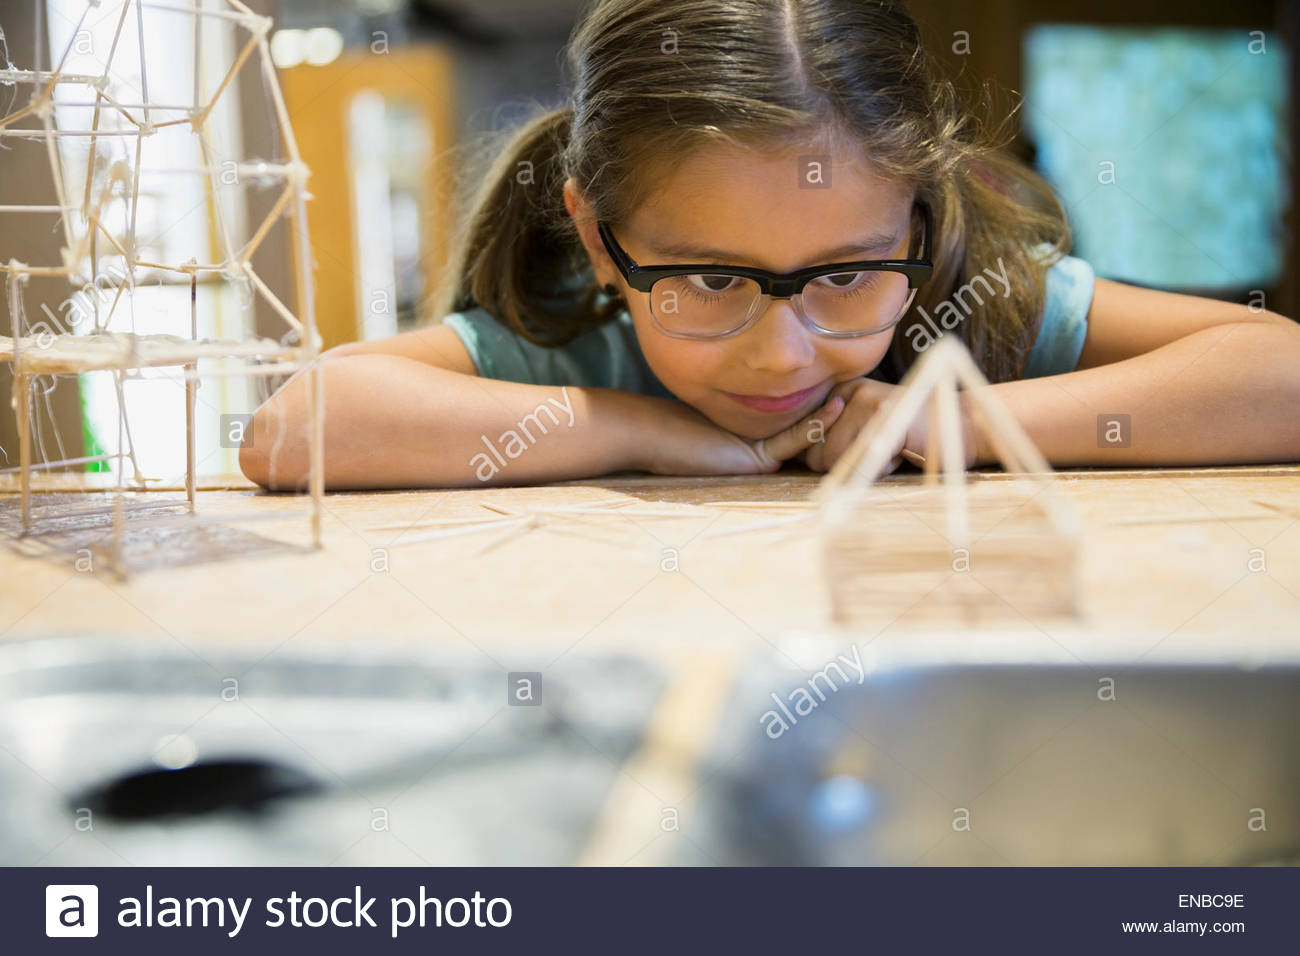 Girl examining toothpick model at science center - Stock Image